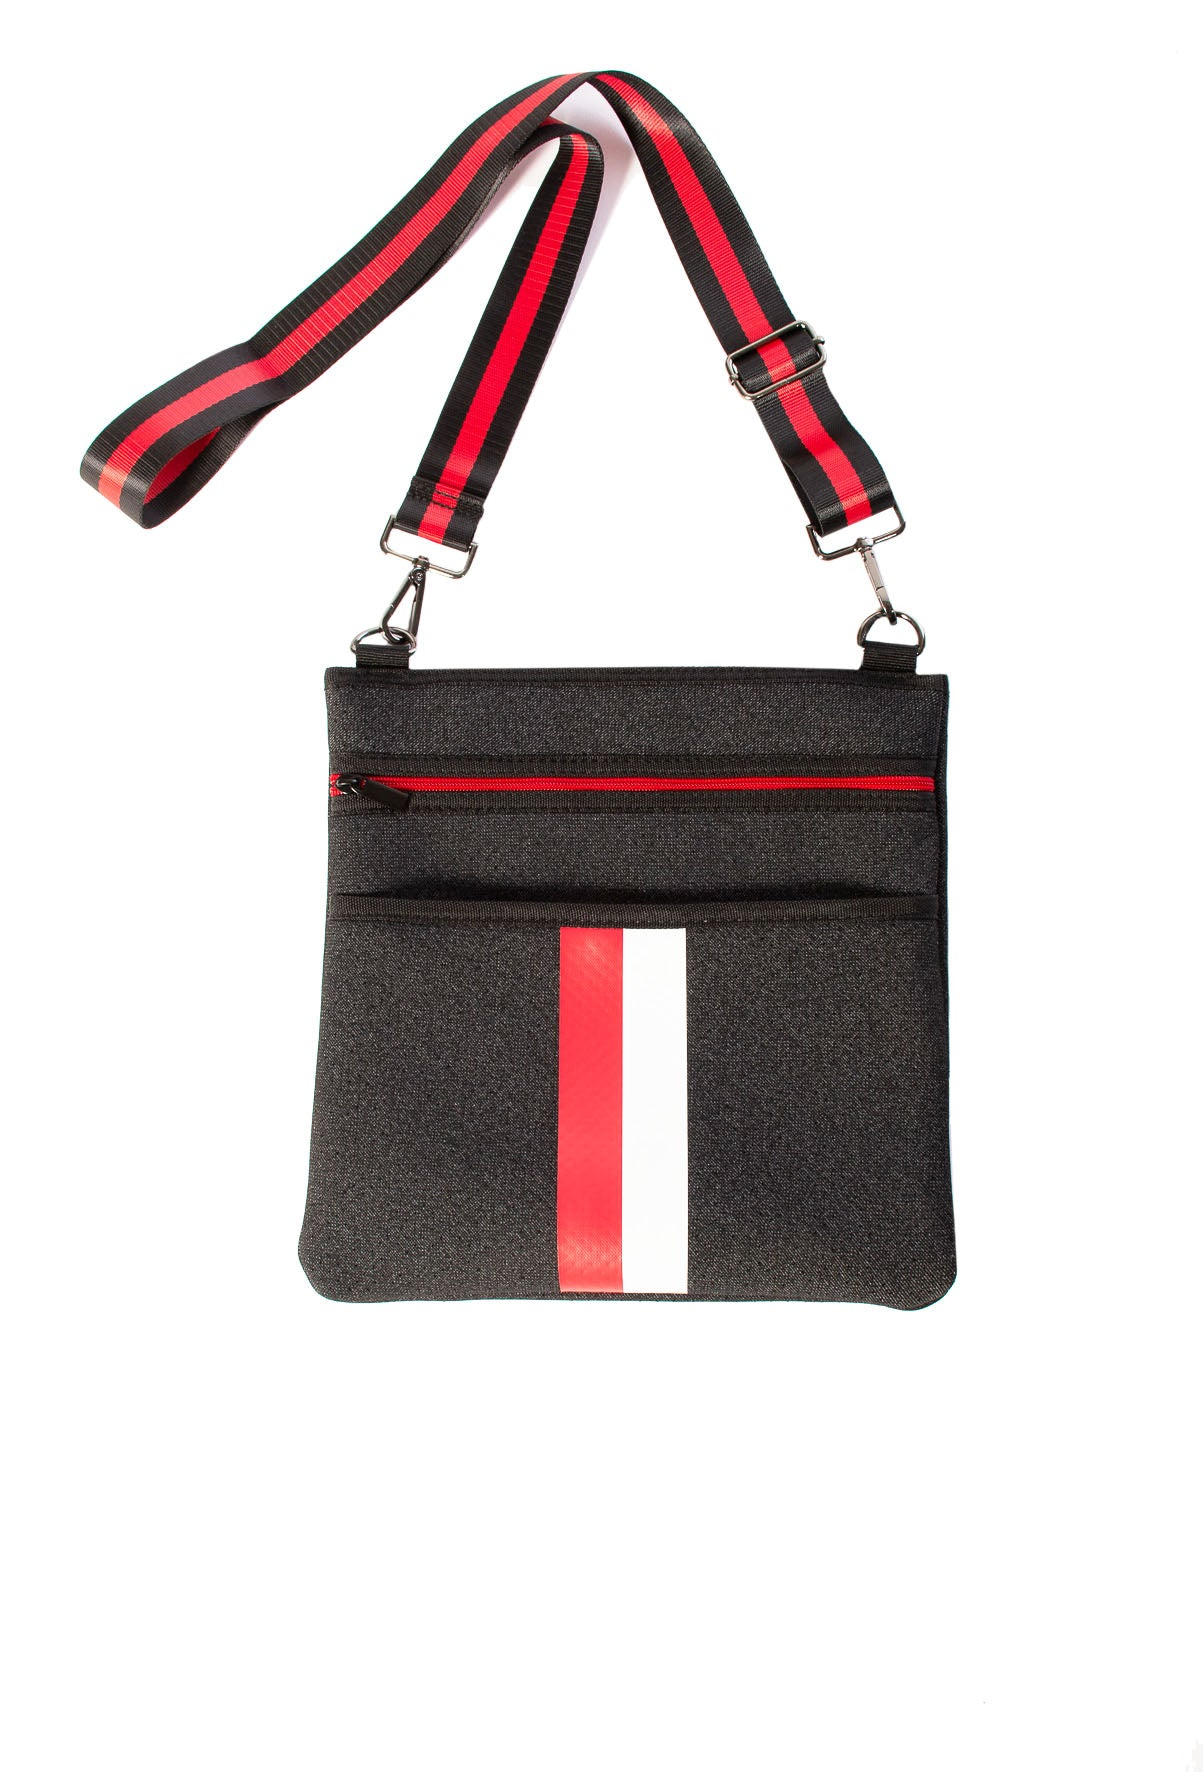 Haute Shore - Peyton Prep Crossbody (Black w/Red & White Stripe)